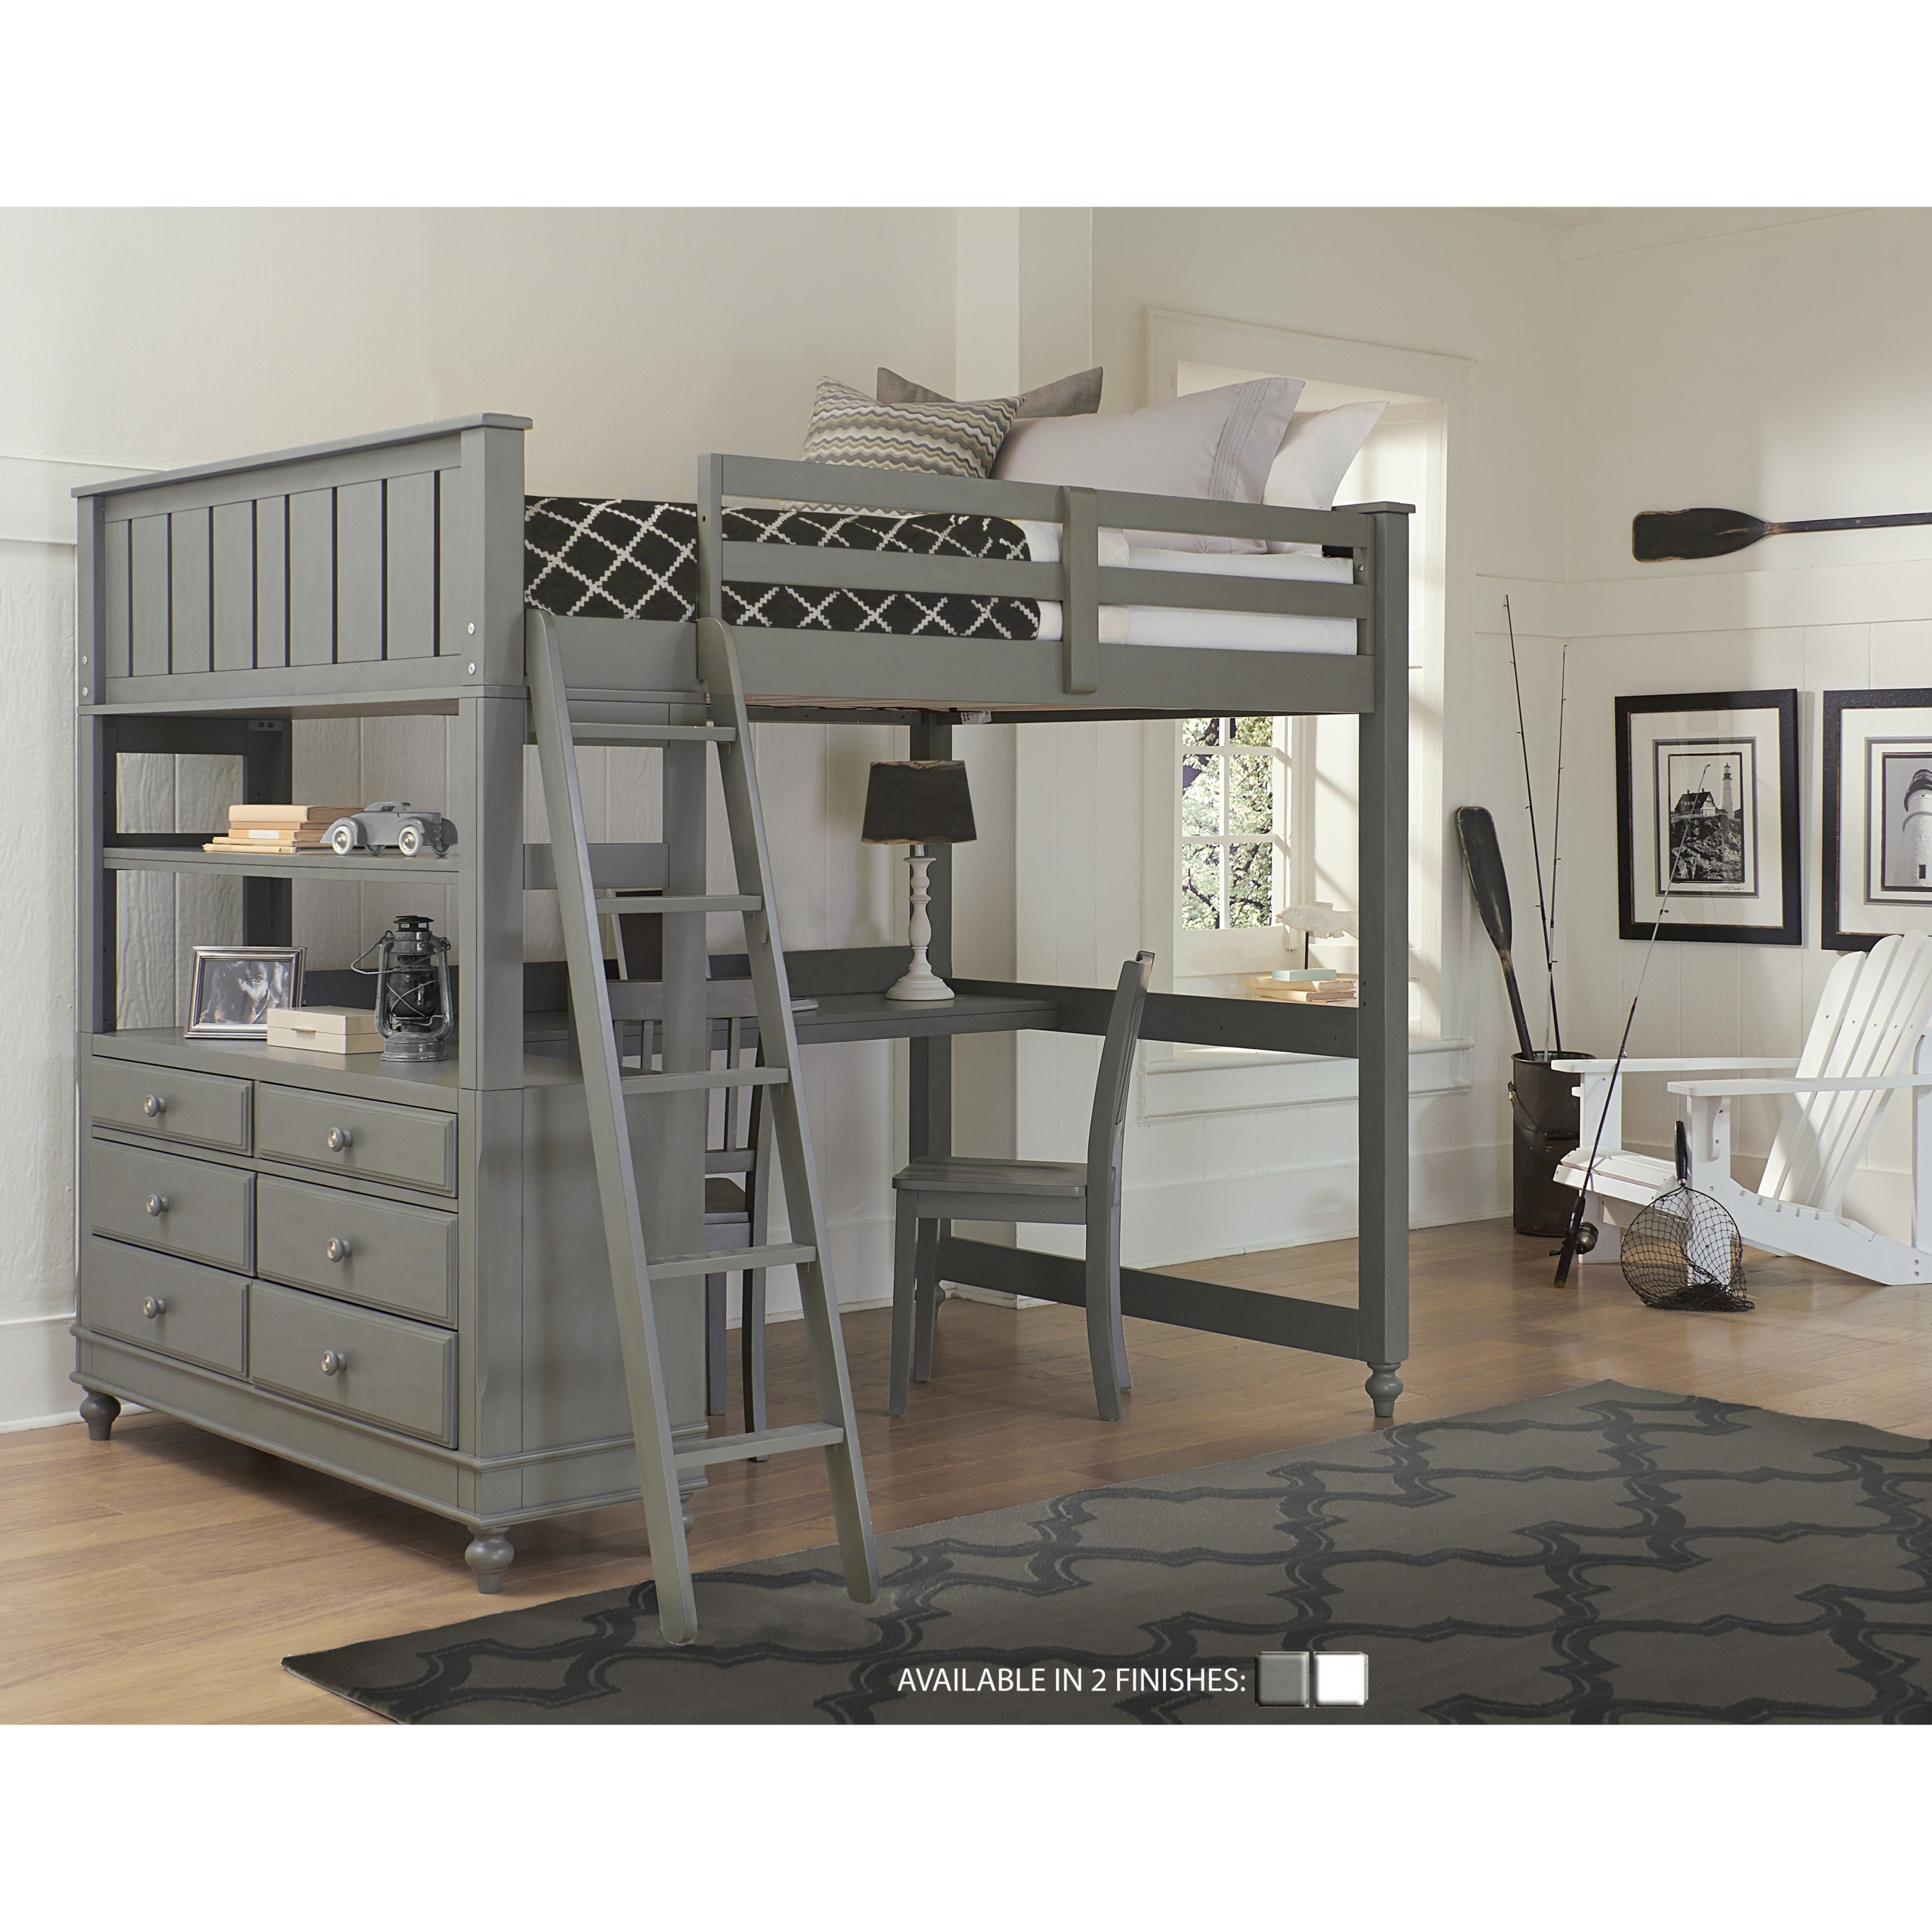 Advantages Of Utilizing Loft Beds For Kids Plans Full Size Loft Bed With Desk